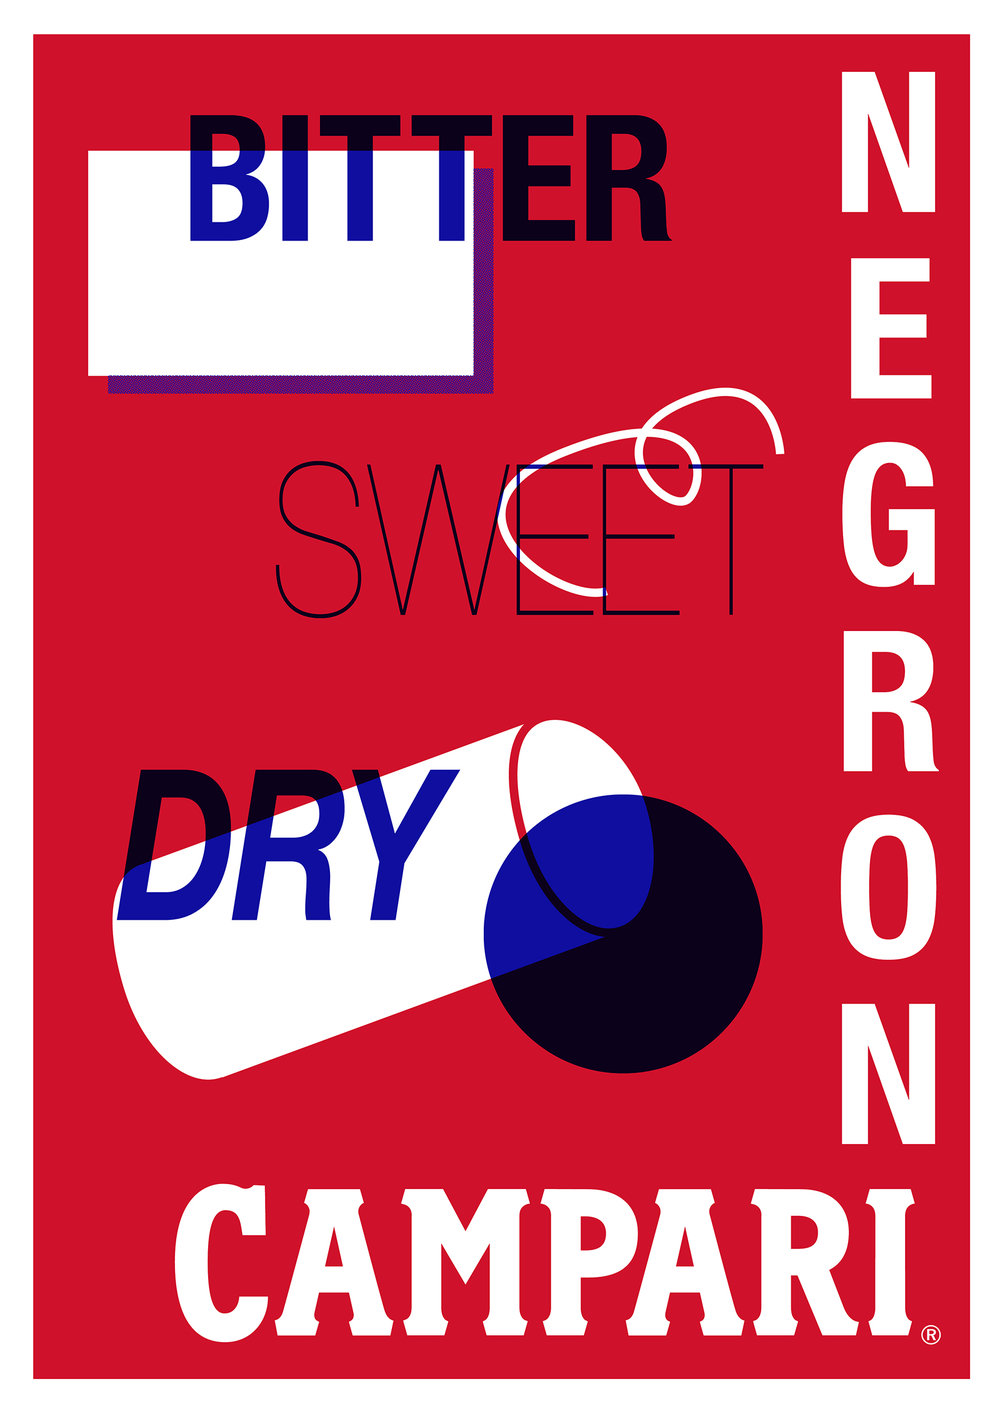 Campari | Negroni Poster | By James-Lee Duffy